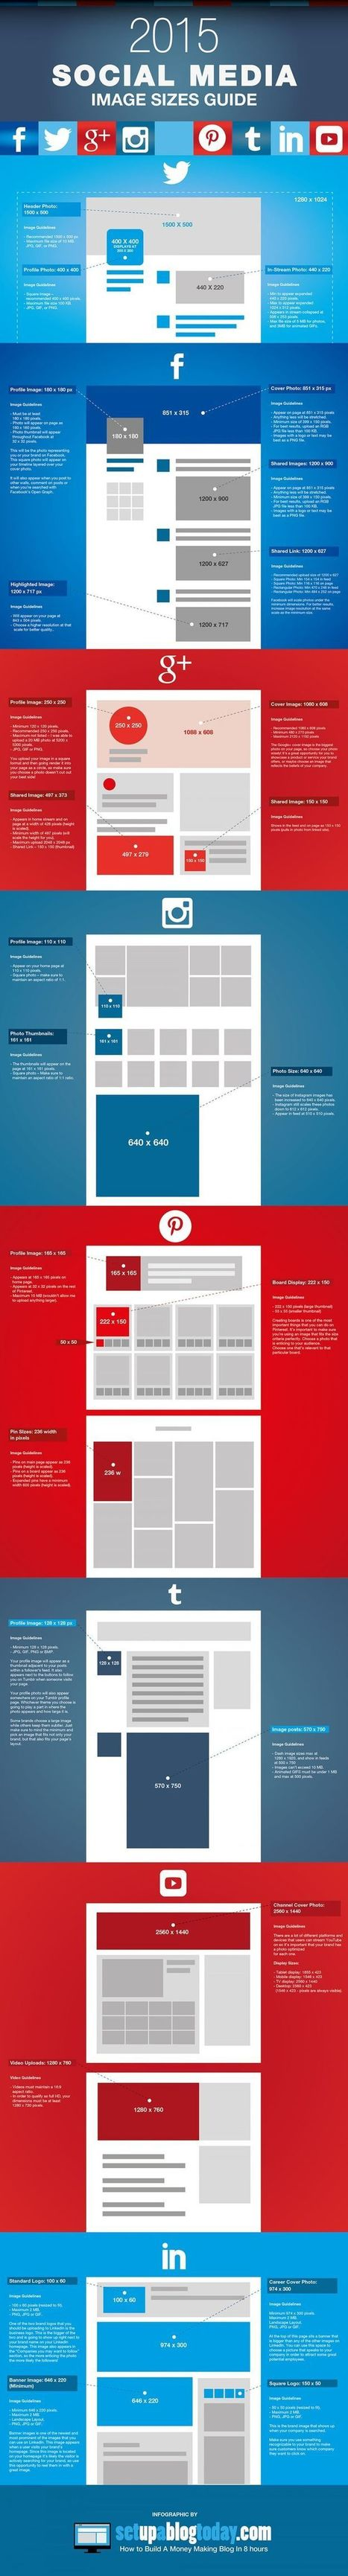 Taille des images de publication sur Twitter, Facebook, Google+, Instagram, Pinterest, Tumblr, YouTube, LinkedIn | Geeks | Scoop.it